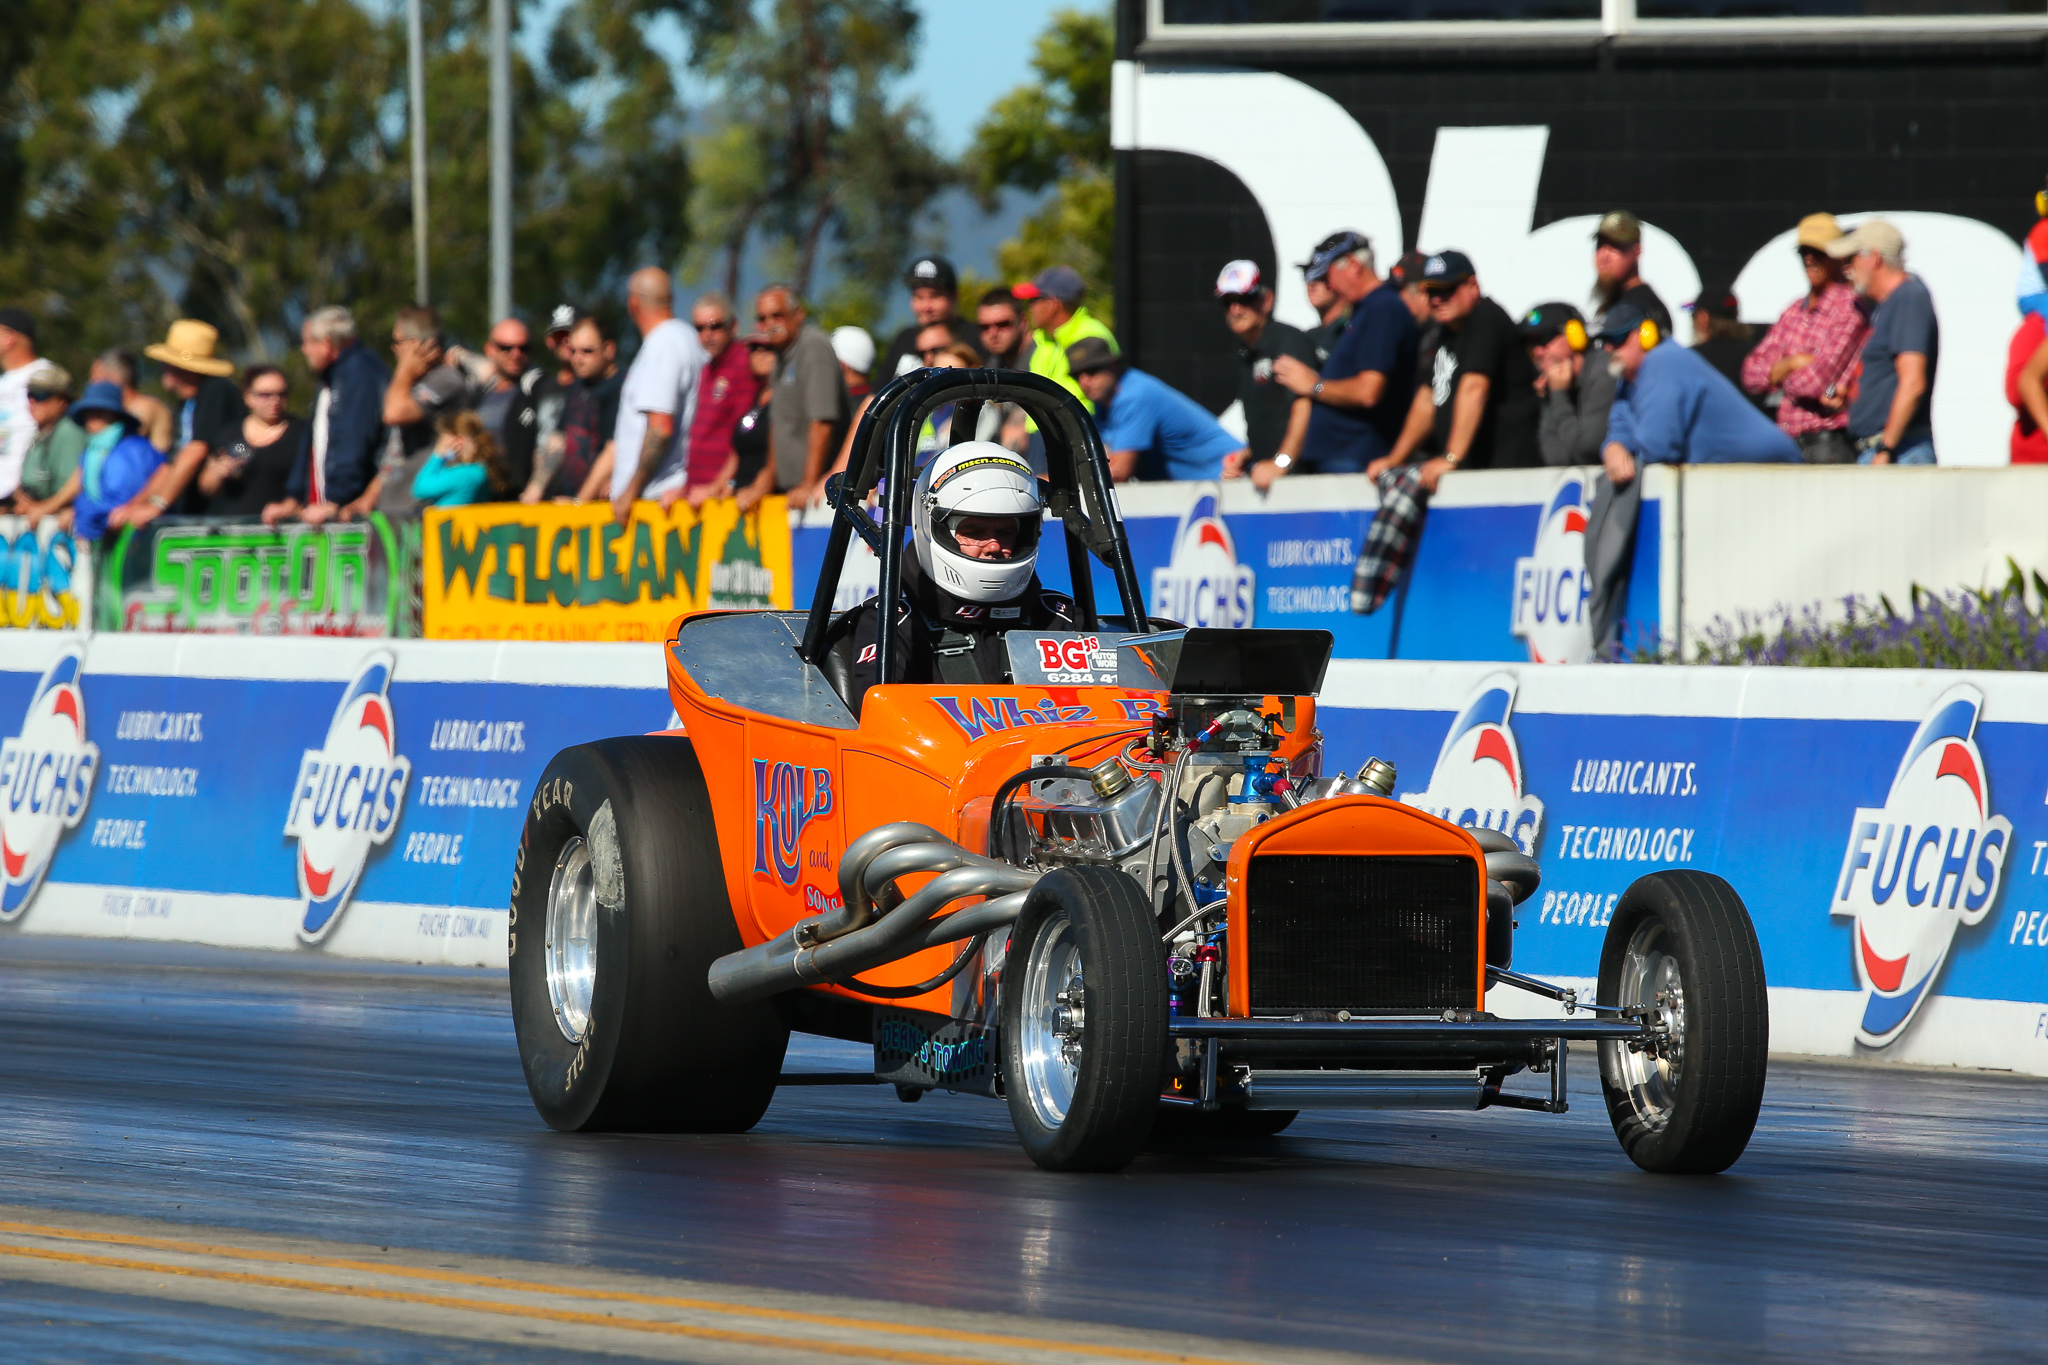 Two rounds will be held at Willowbank Raceway, before racers head to a two-day final at Sydney Dragway (credit-dragphotos.com.au)